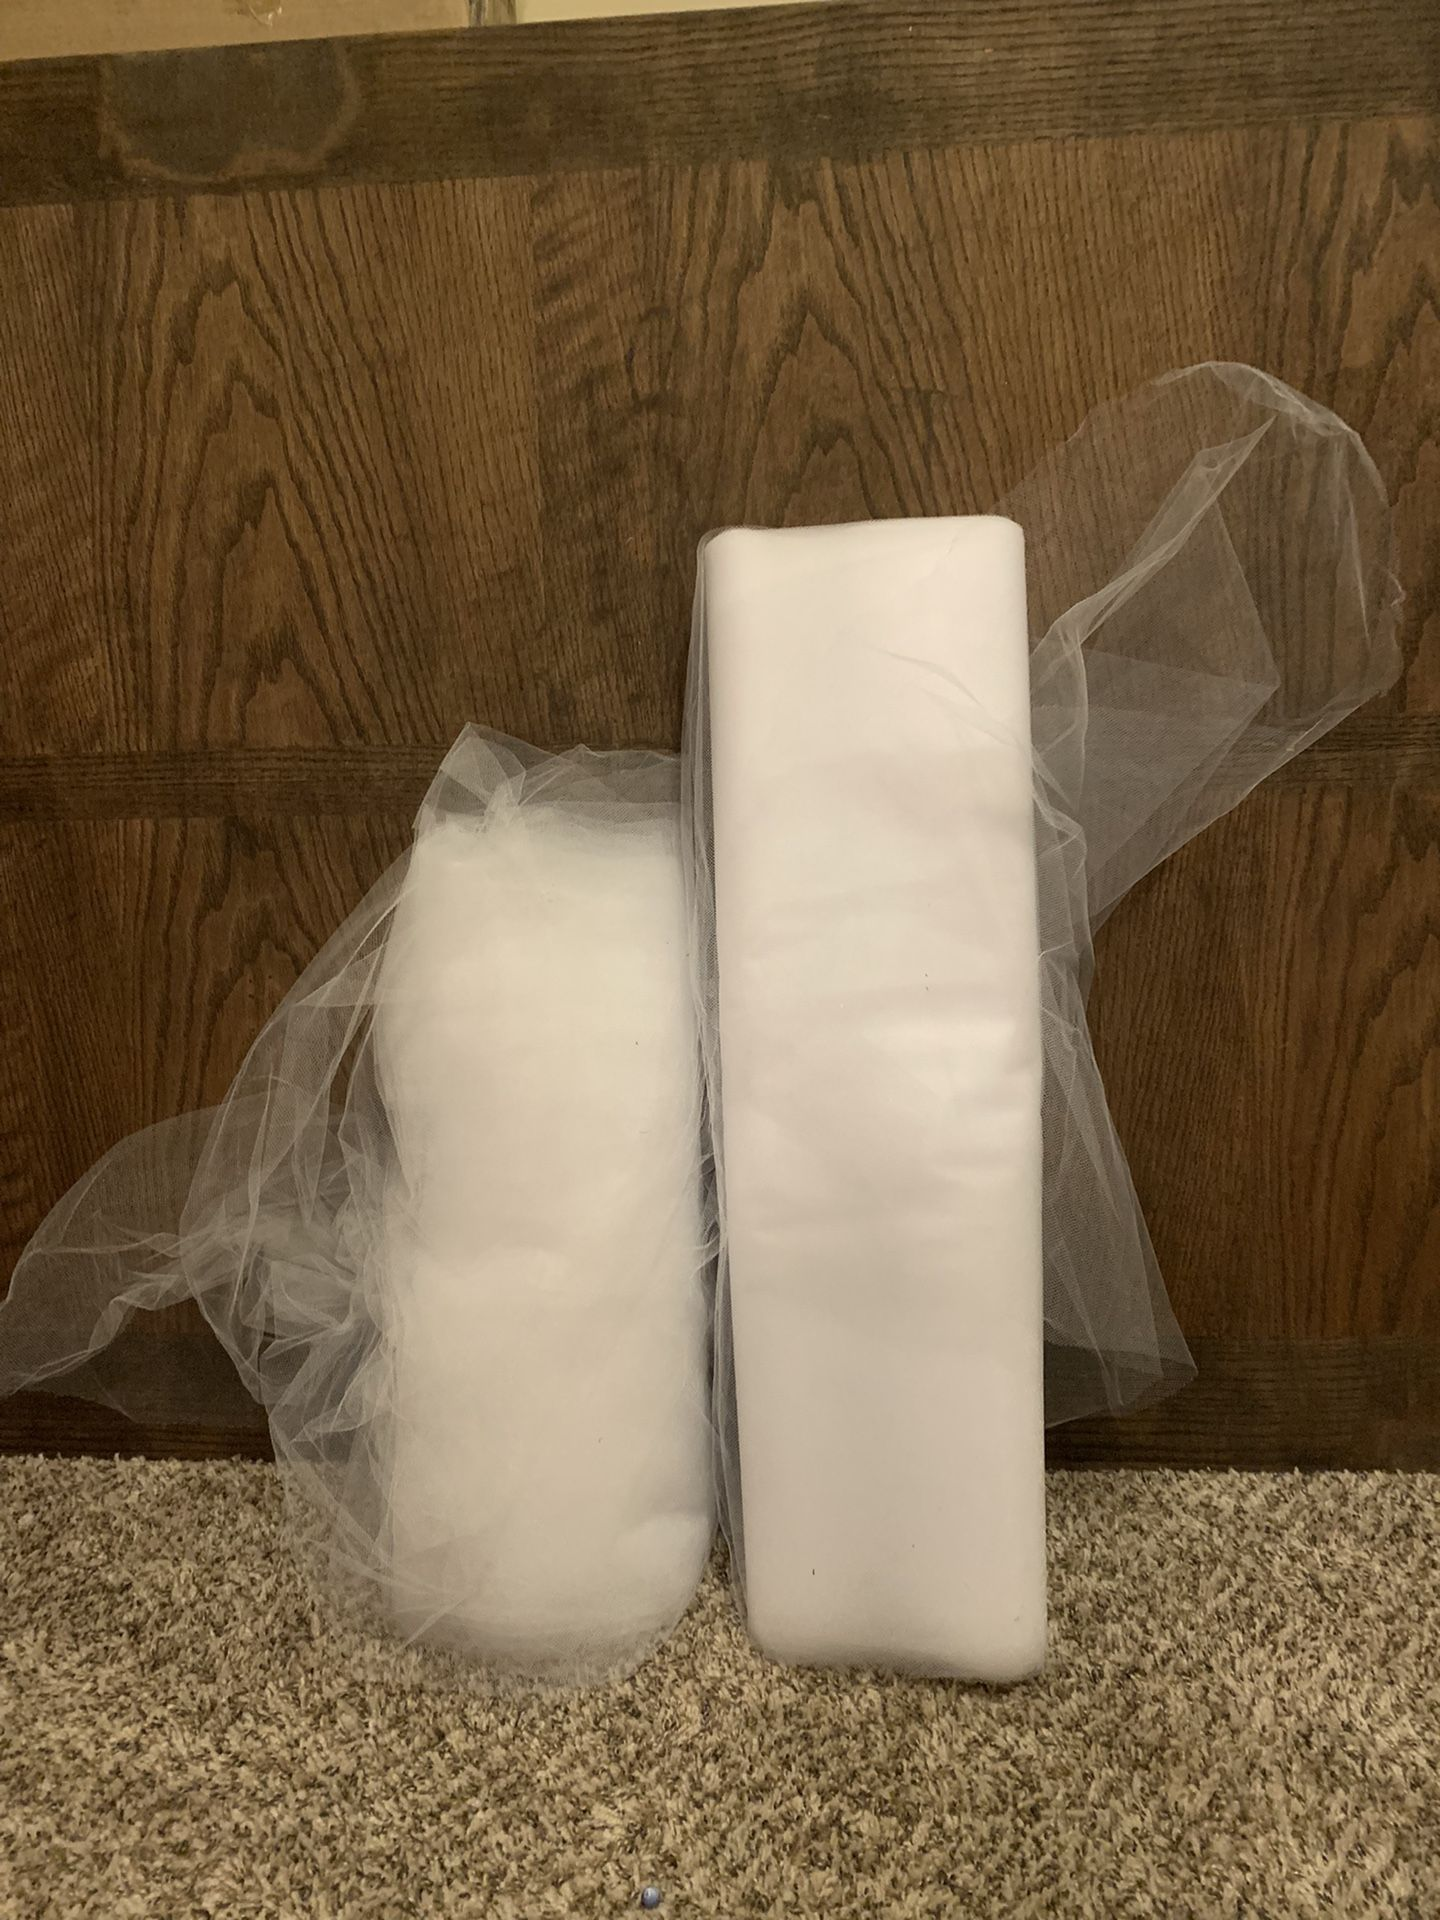 40 Yards Total Of White Tulle